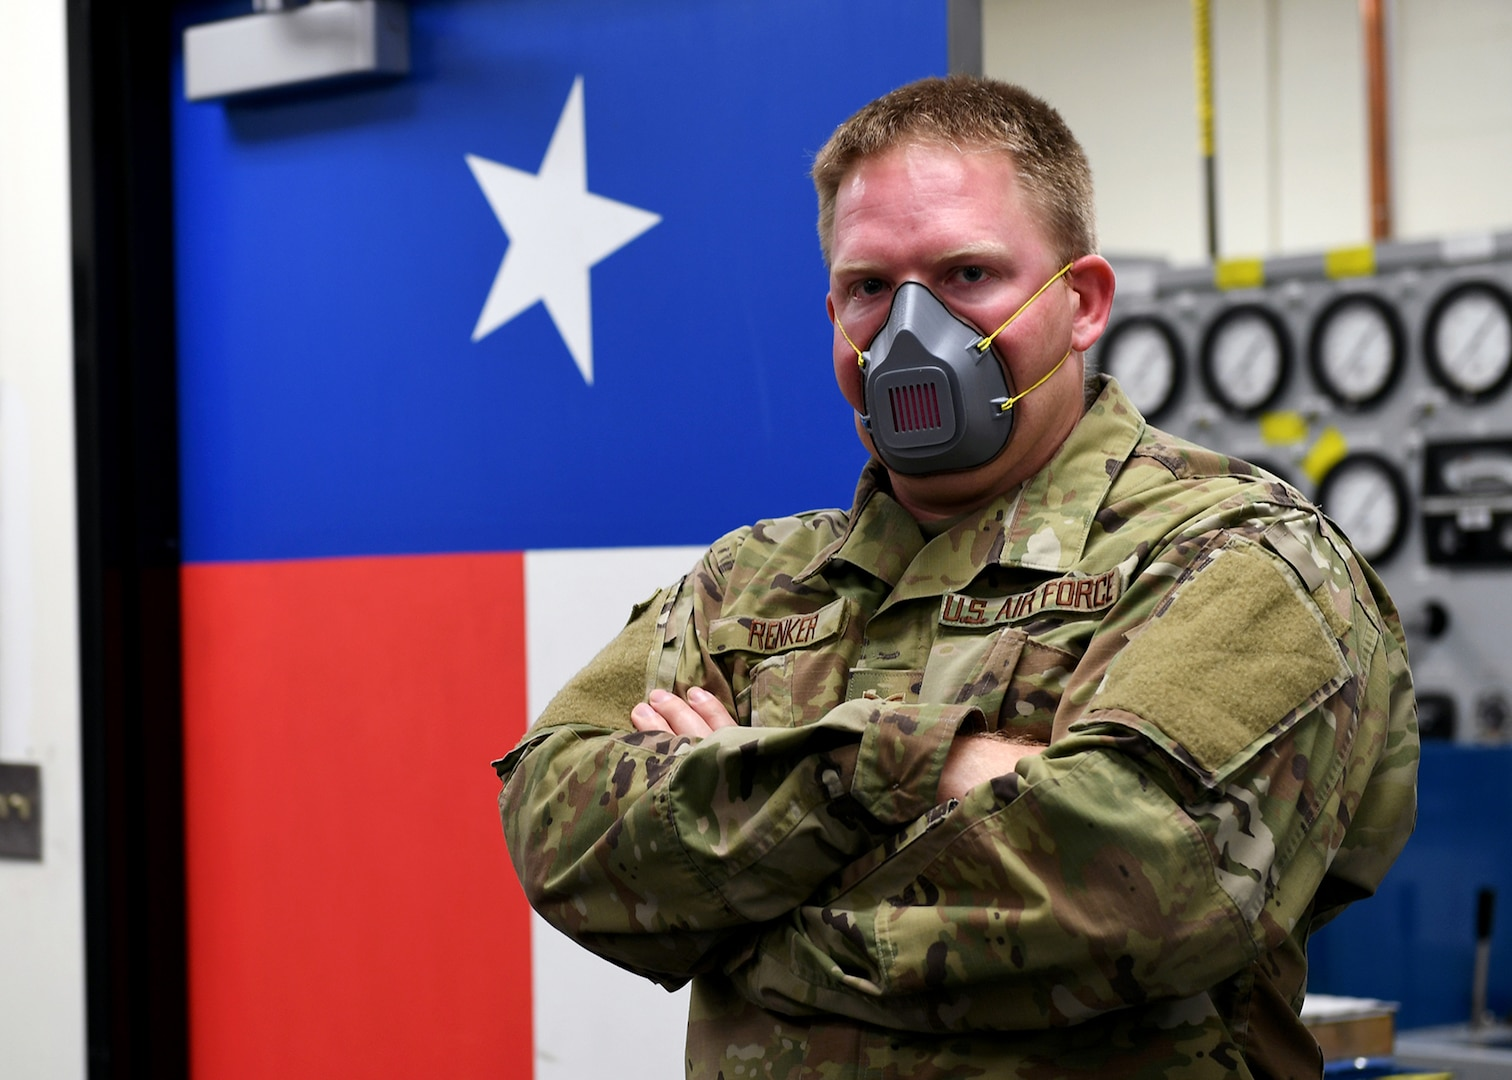 Staff Sgt. Paul Renker, 149th Maintenance Squadron hydraulics technician, wears a mask he made on his personal 3D printer for people in his unit who might need one after initial guidance came out about use and wear for Air Force personnel.